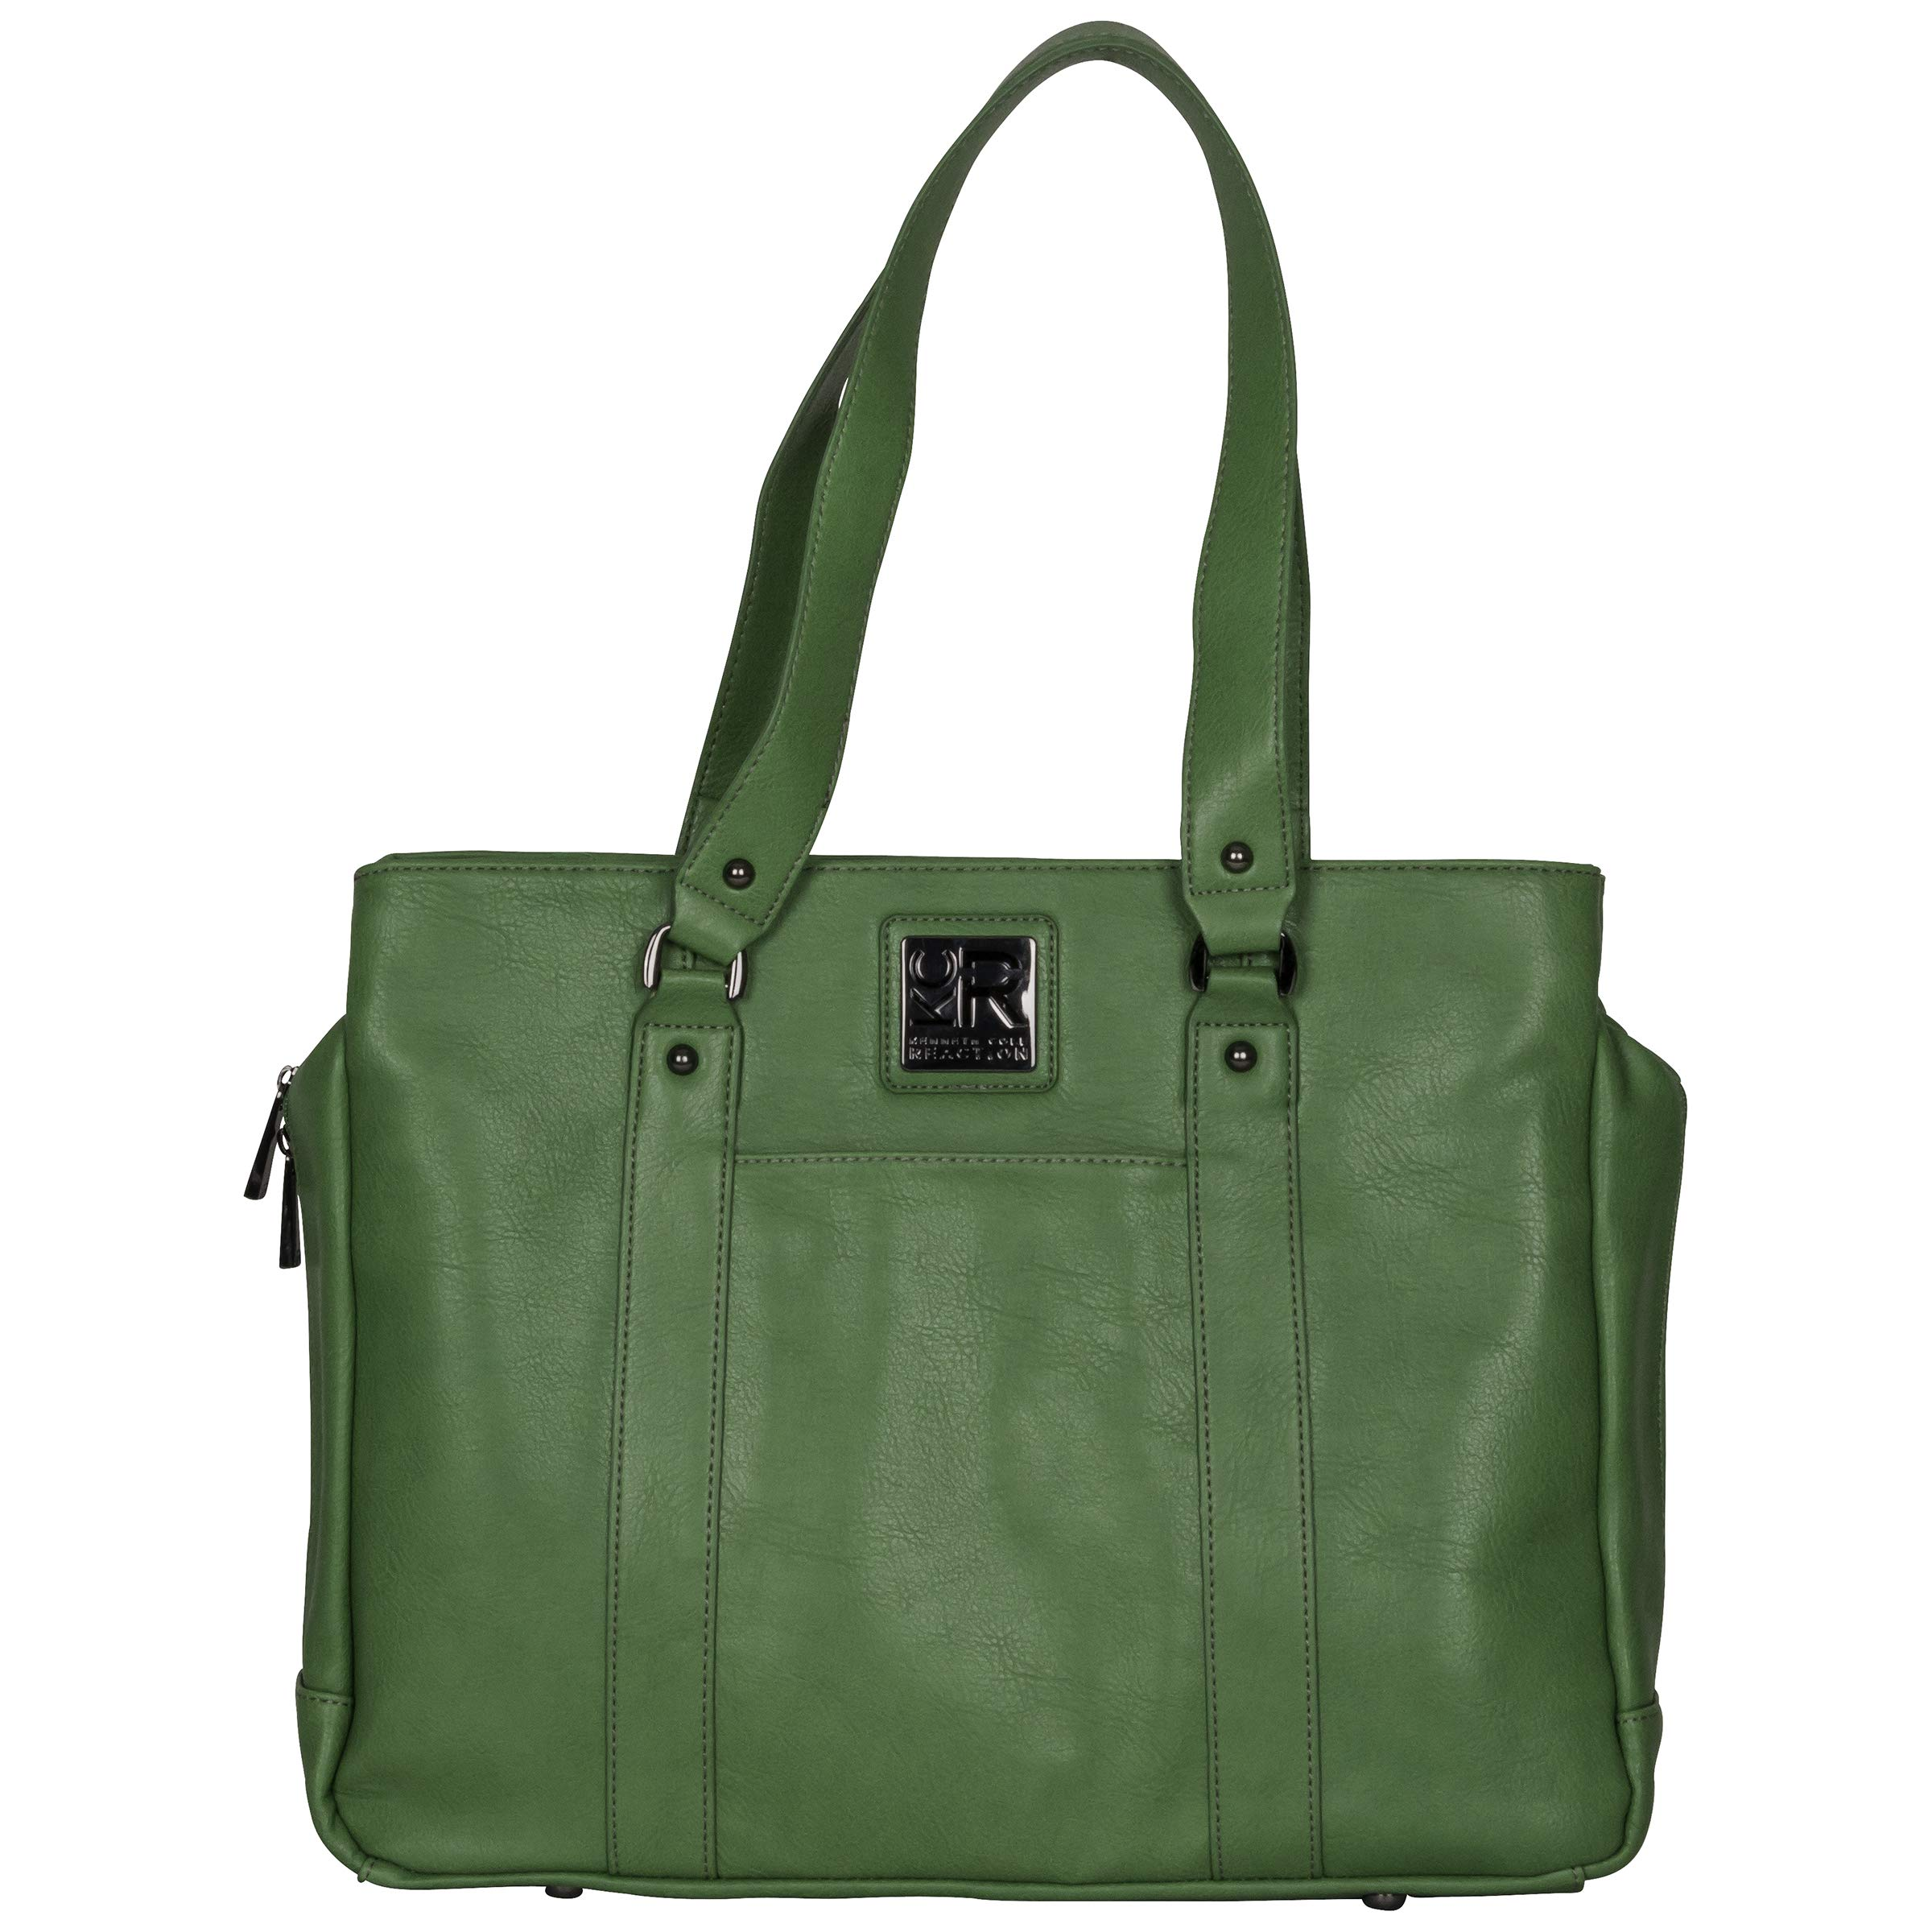 Kenneth Cole Reaction Hit Women's Pebbled Faux Leather Triple Compartment 15'' Laptop Business Tote, Kelly Green